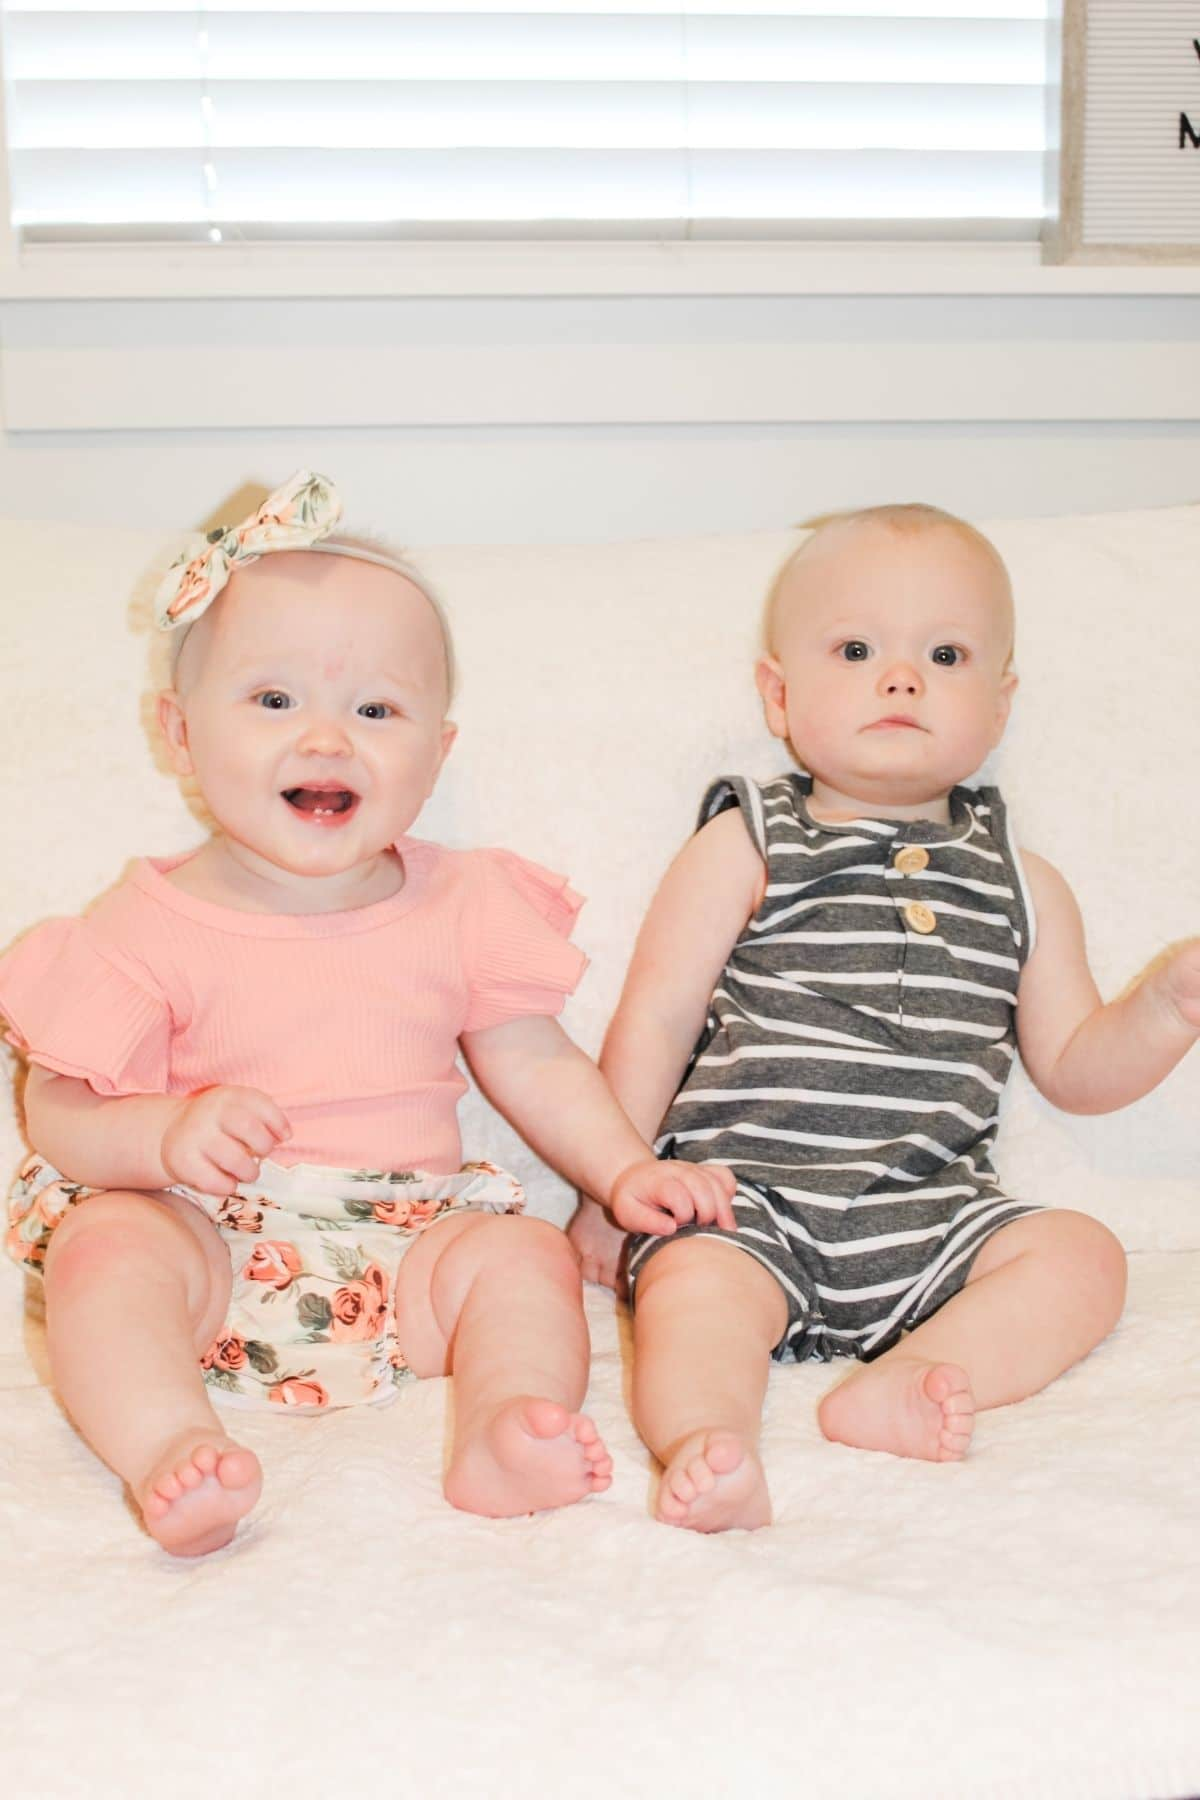 baby girl wearing pink floral outfit and boy wearing striped romper sitting up on a couch